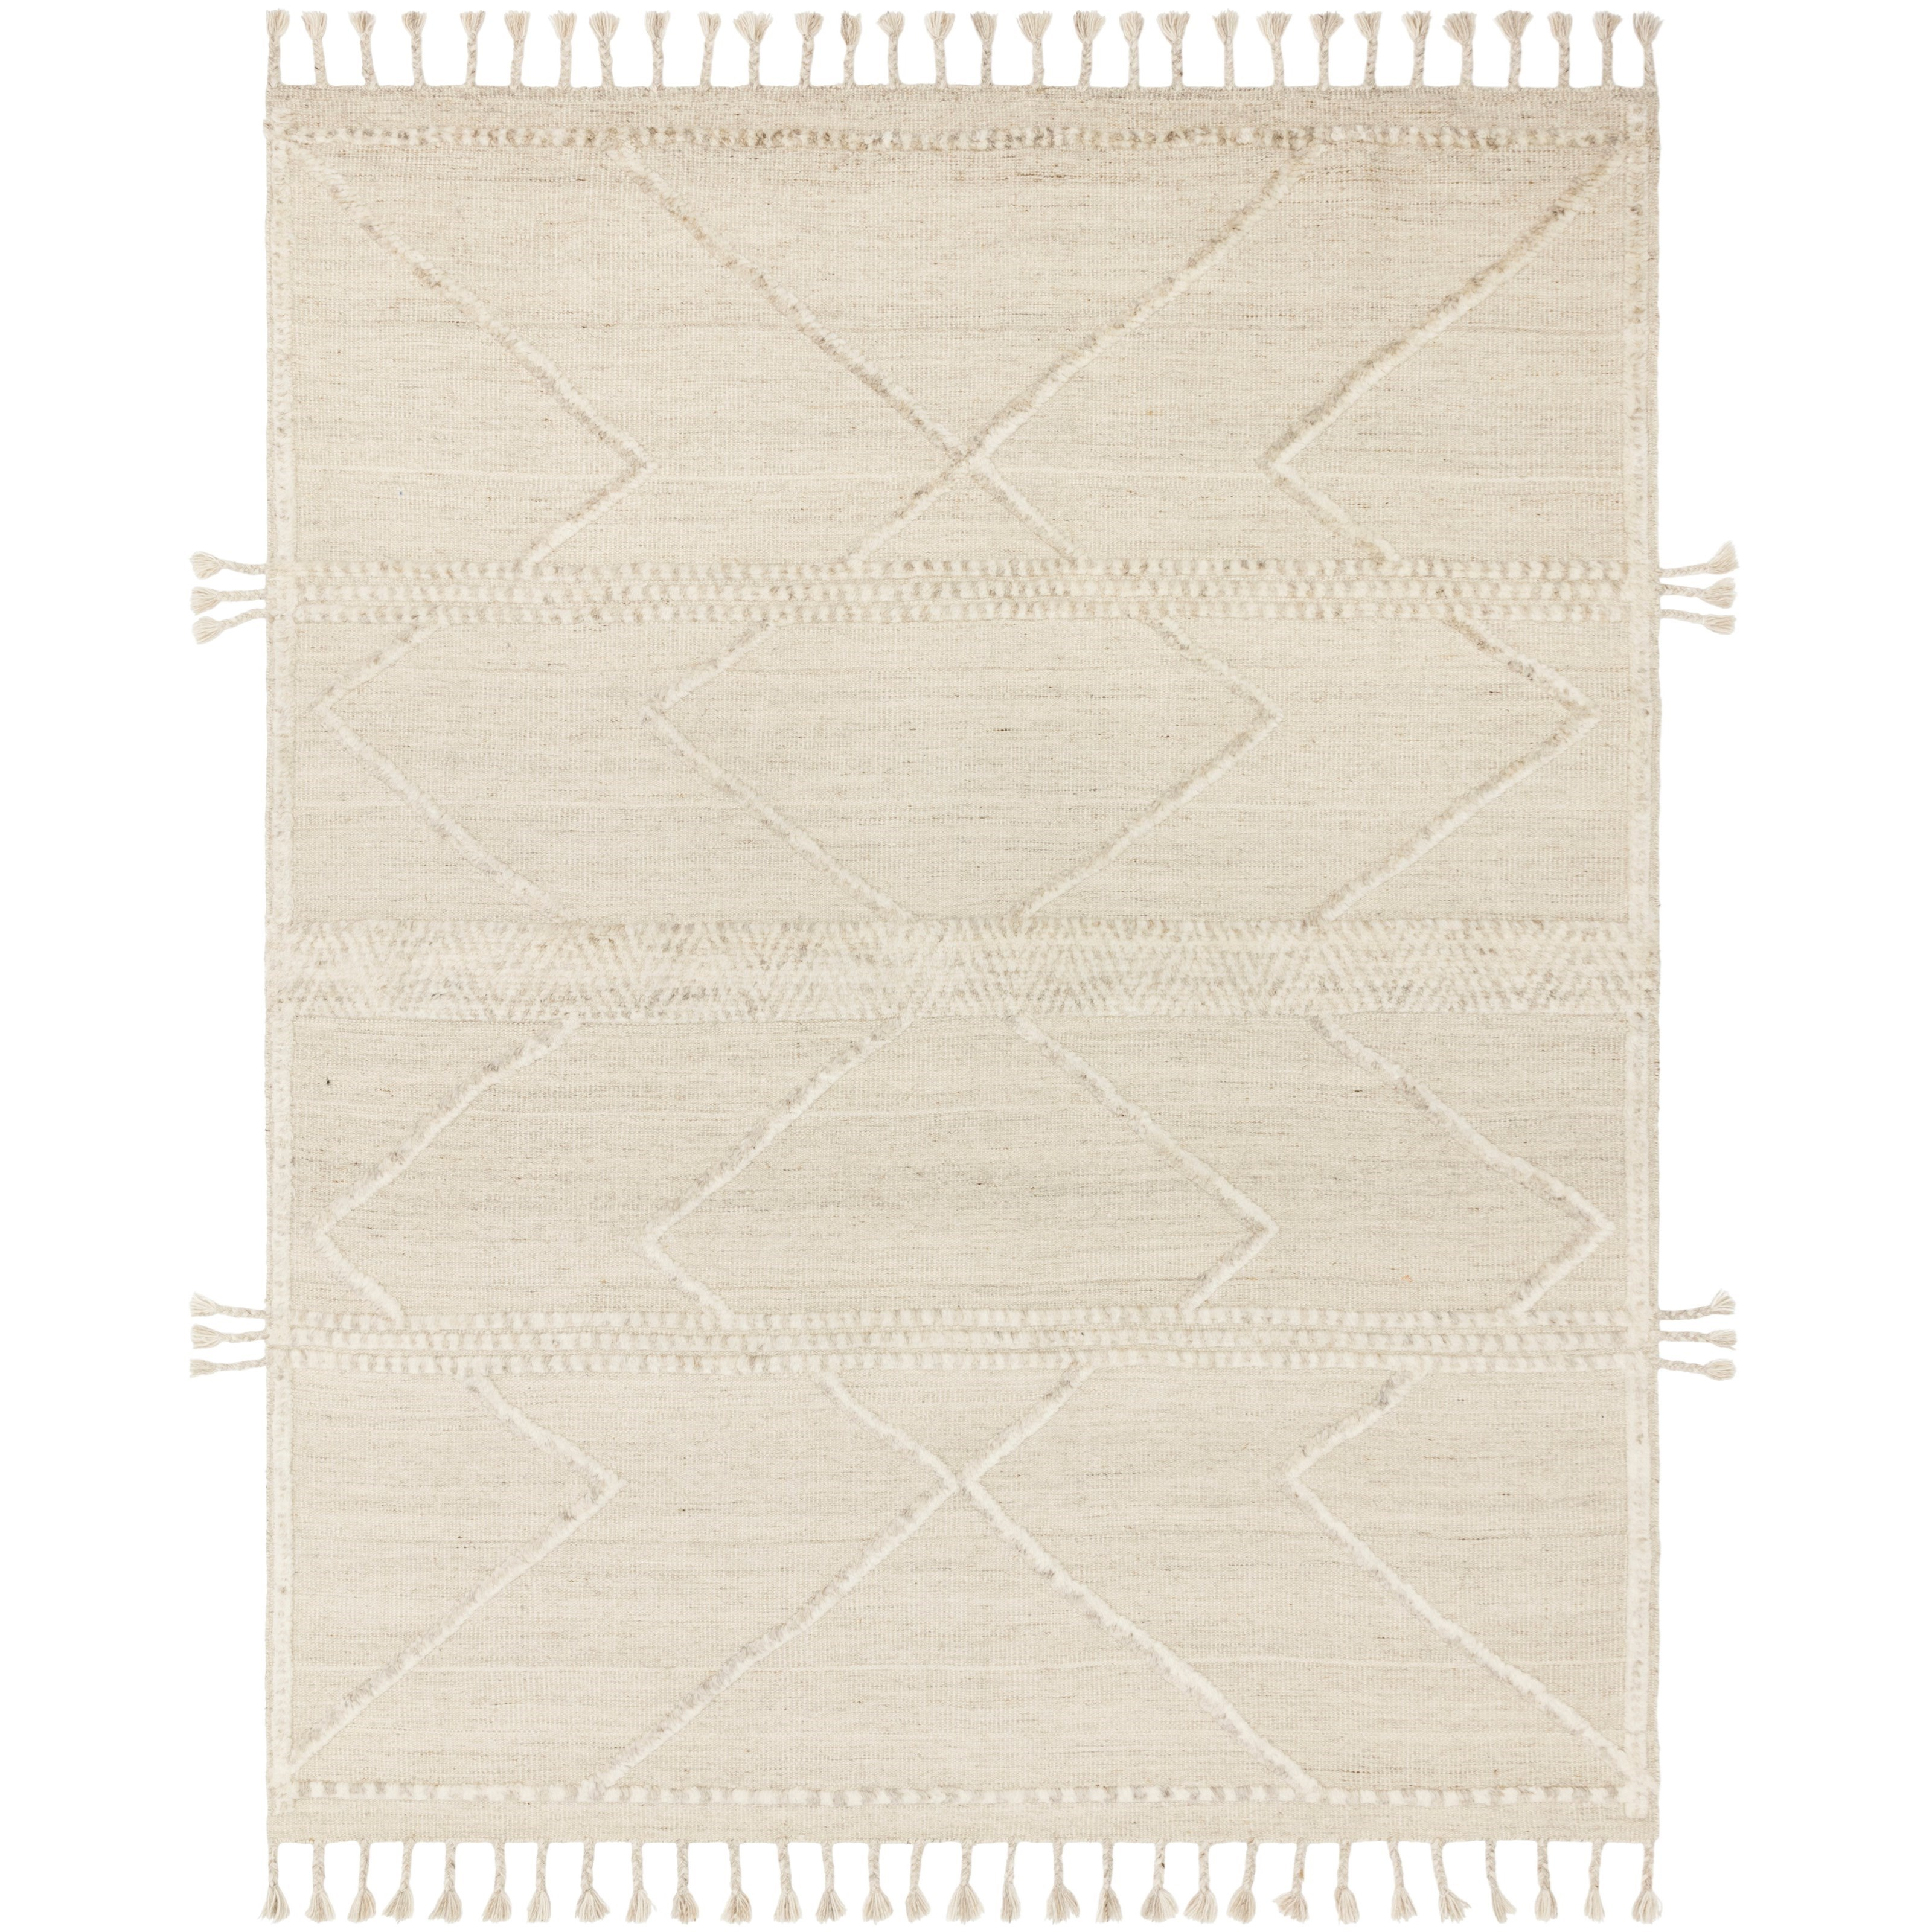 """Iman 4'0"""" x 6'0"""" Beige / Ivory Rug by Loloi Rugs at Virginia Furniture Market"""